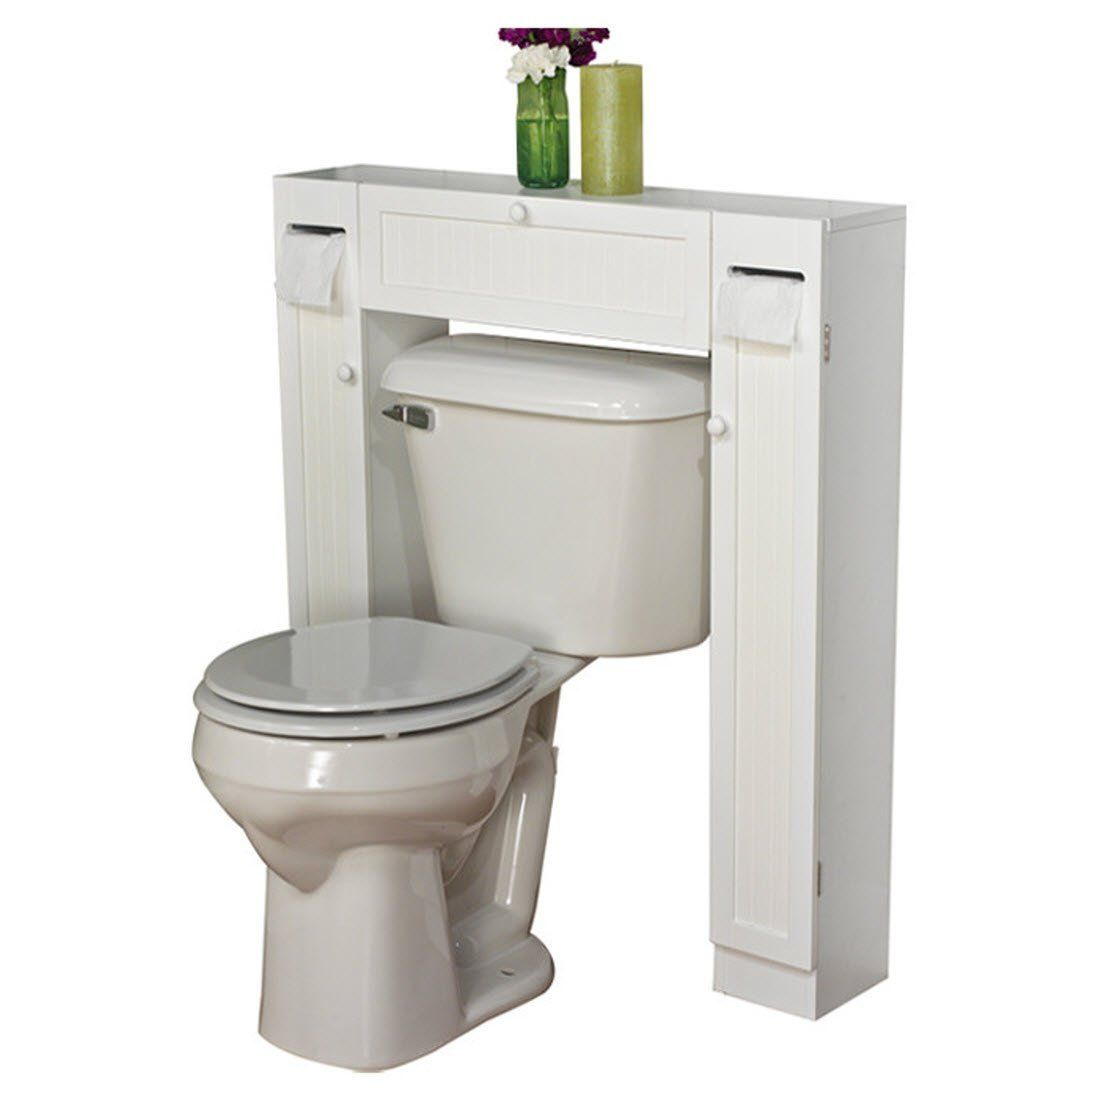 """Amazon.com: 34"""" x 38.5"""" Over the Toilet Cabinet - It Has A White Finish - Constructed from Engineered Wood - It Has One Paper Holder, One Fixed Shelf and Two Adjustable Shelves: Kitchen & Dining"""